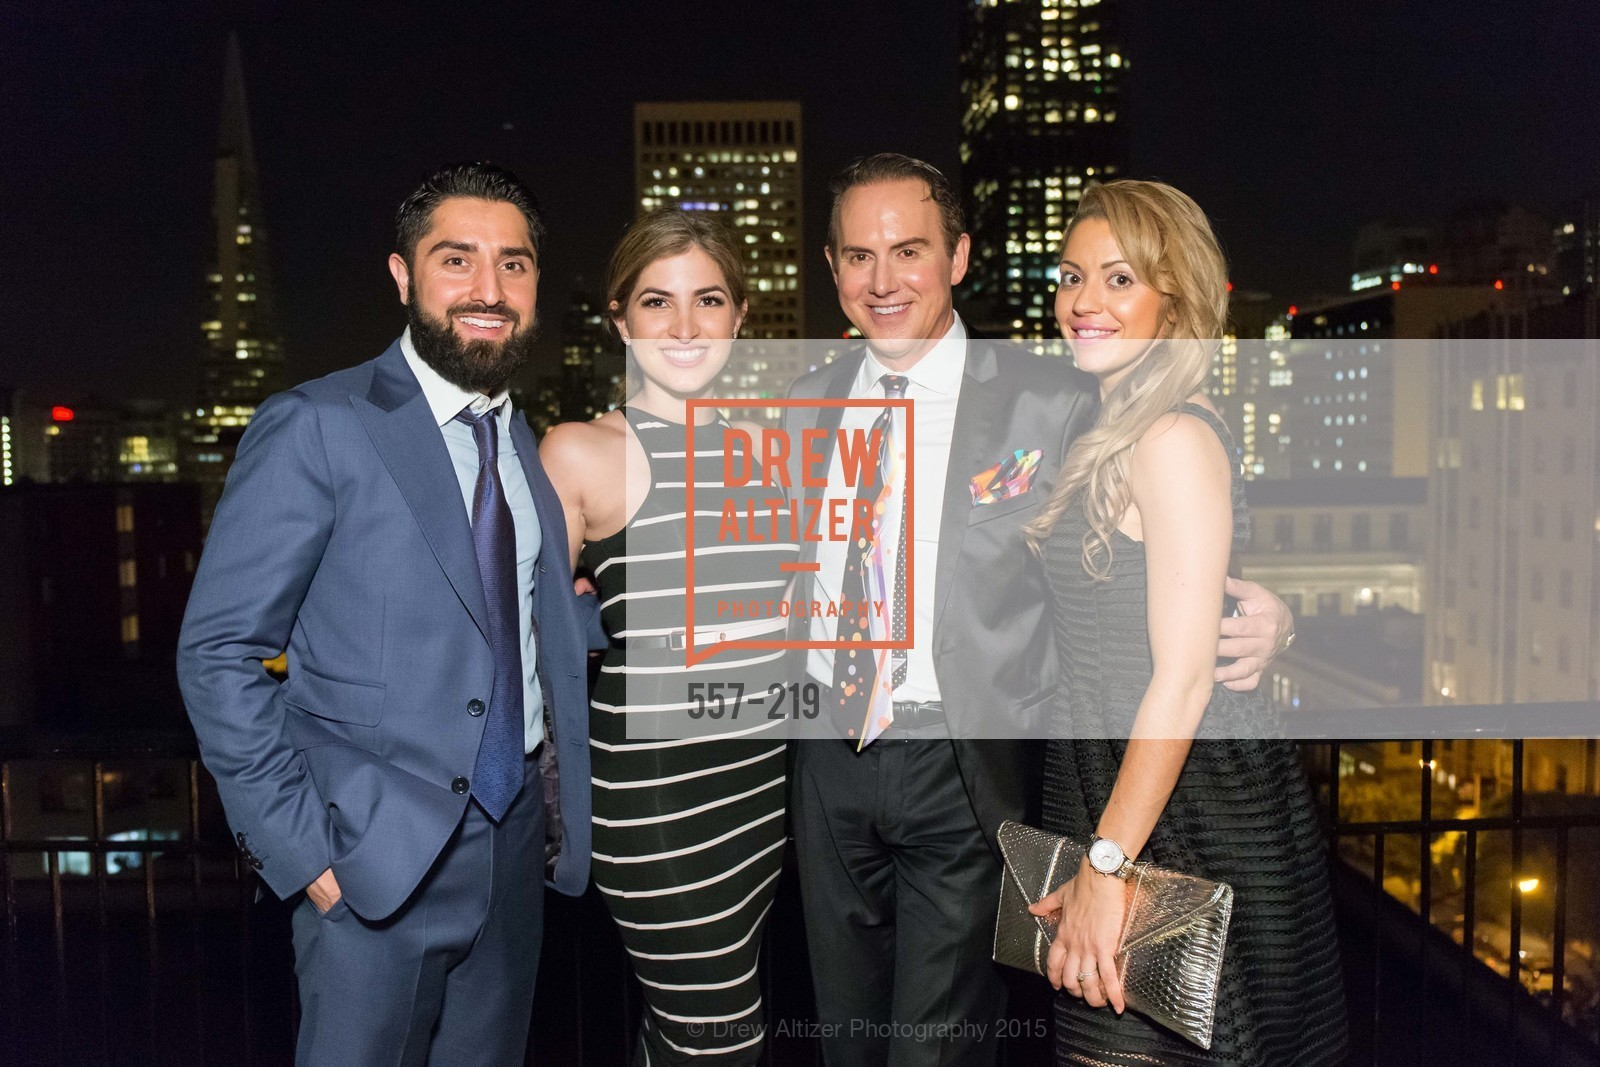 Roh Habibi, Shugufa Habibi, Joel Goodrich, Jessica Smith, Champagne Reception & Screening of Million Dollar Listing San Francisco, University Club. 800 Powell St, August 5th, 2015,Drew Altizer, Drew Altizer Photography, full-service agency, private events, San Francisco photographer, photographer california